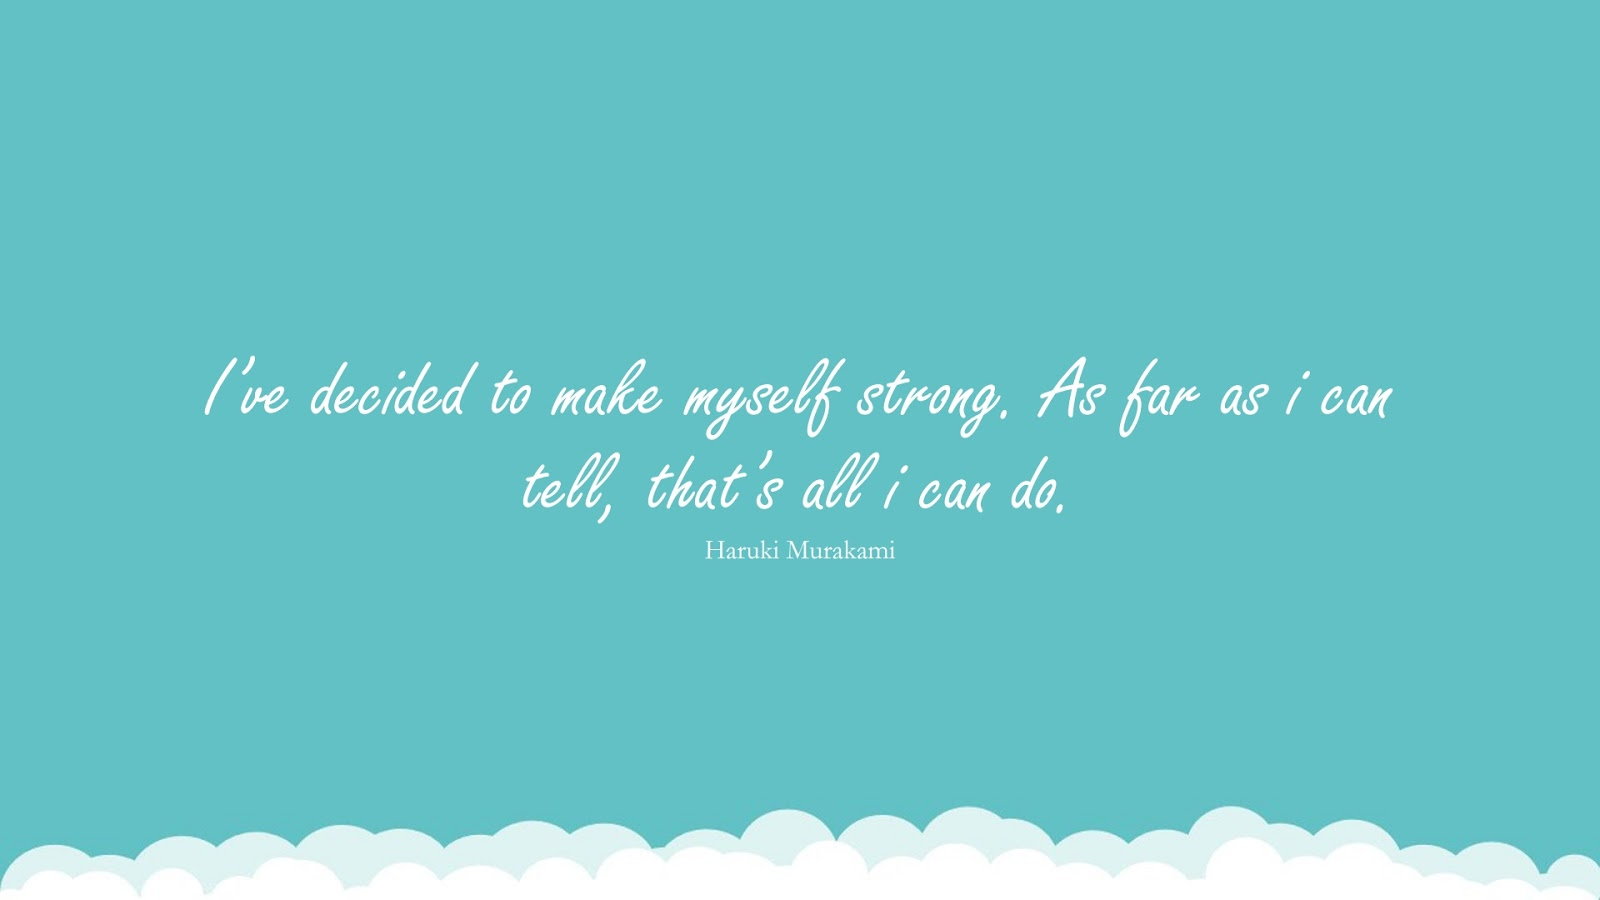 I've decided to make myself strong. As far as i can tell, that's all i can do. (Haruki Murakami);  #BeingStrongQuotes